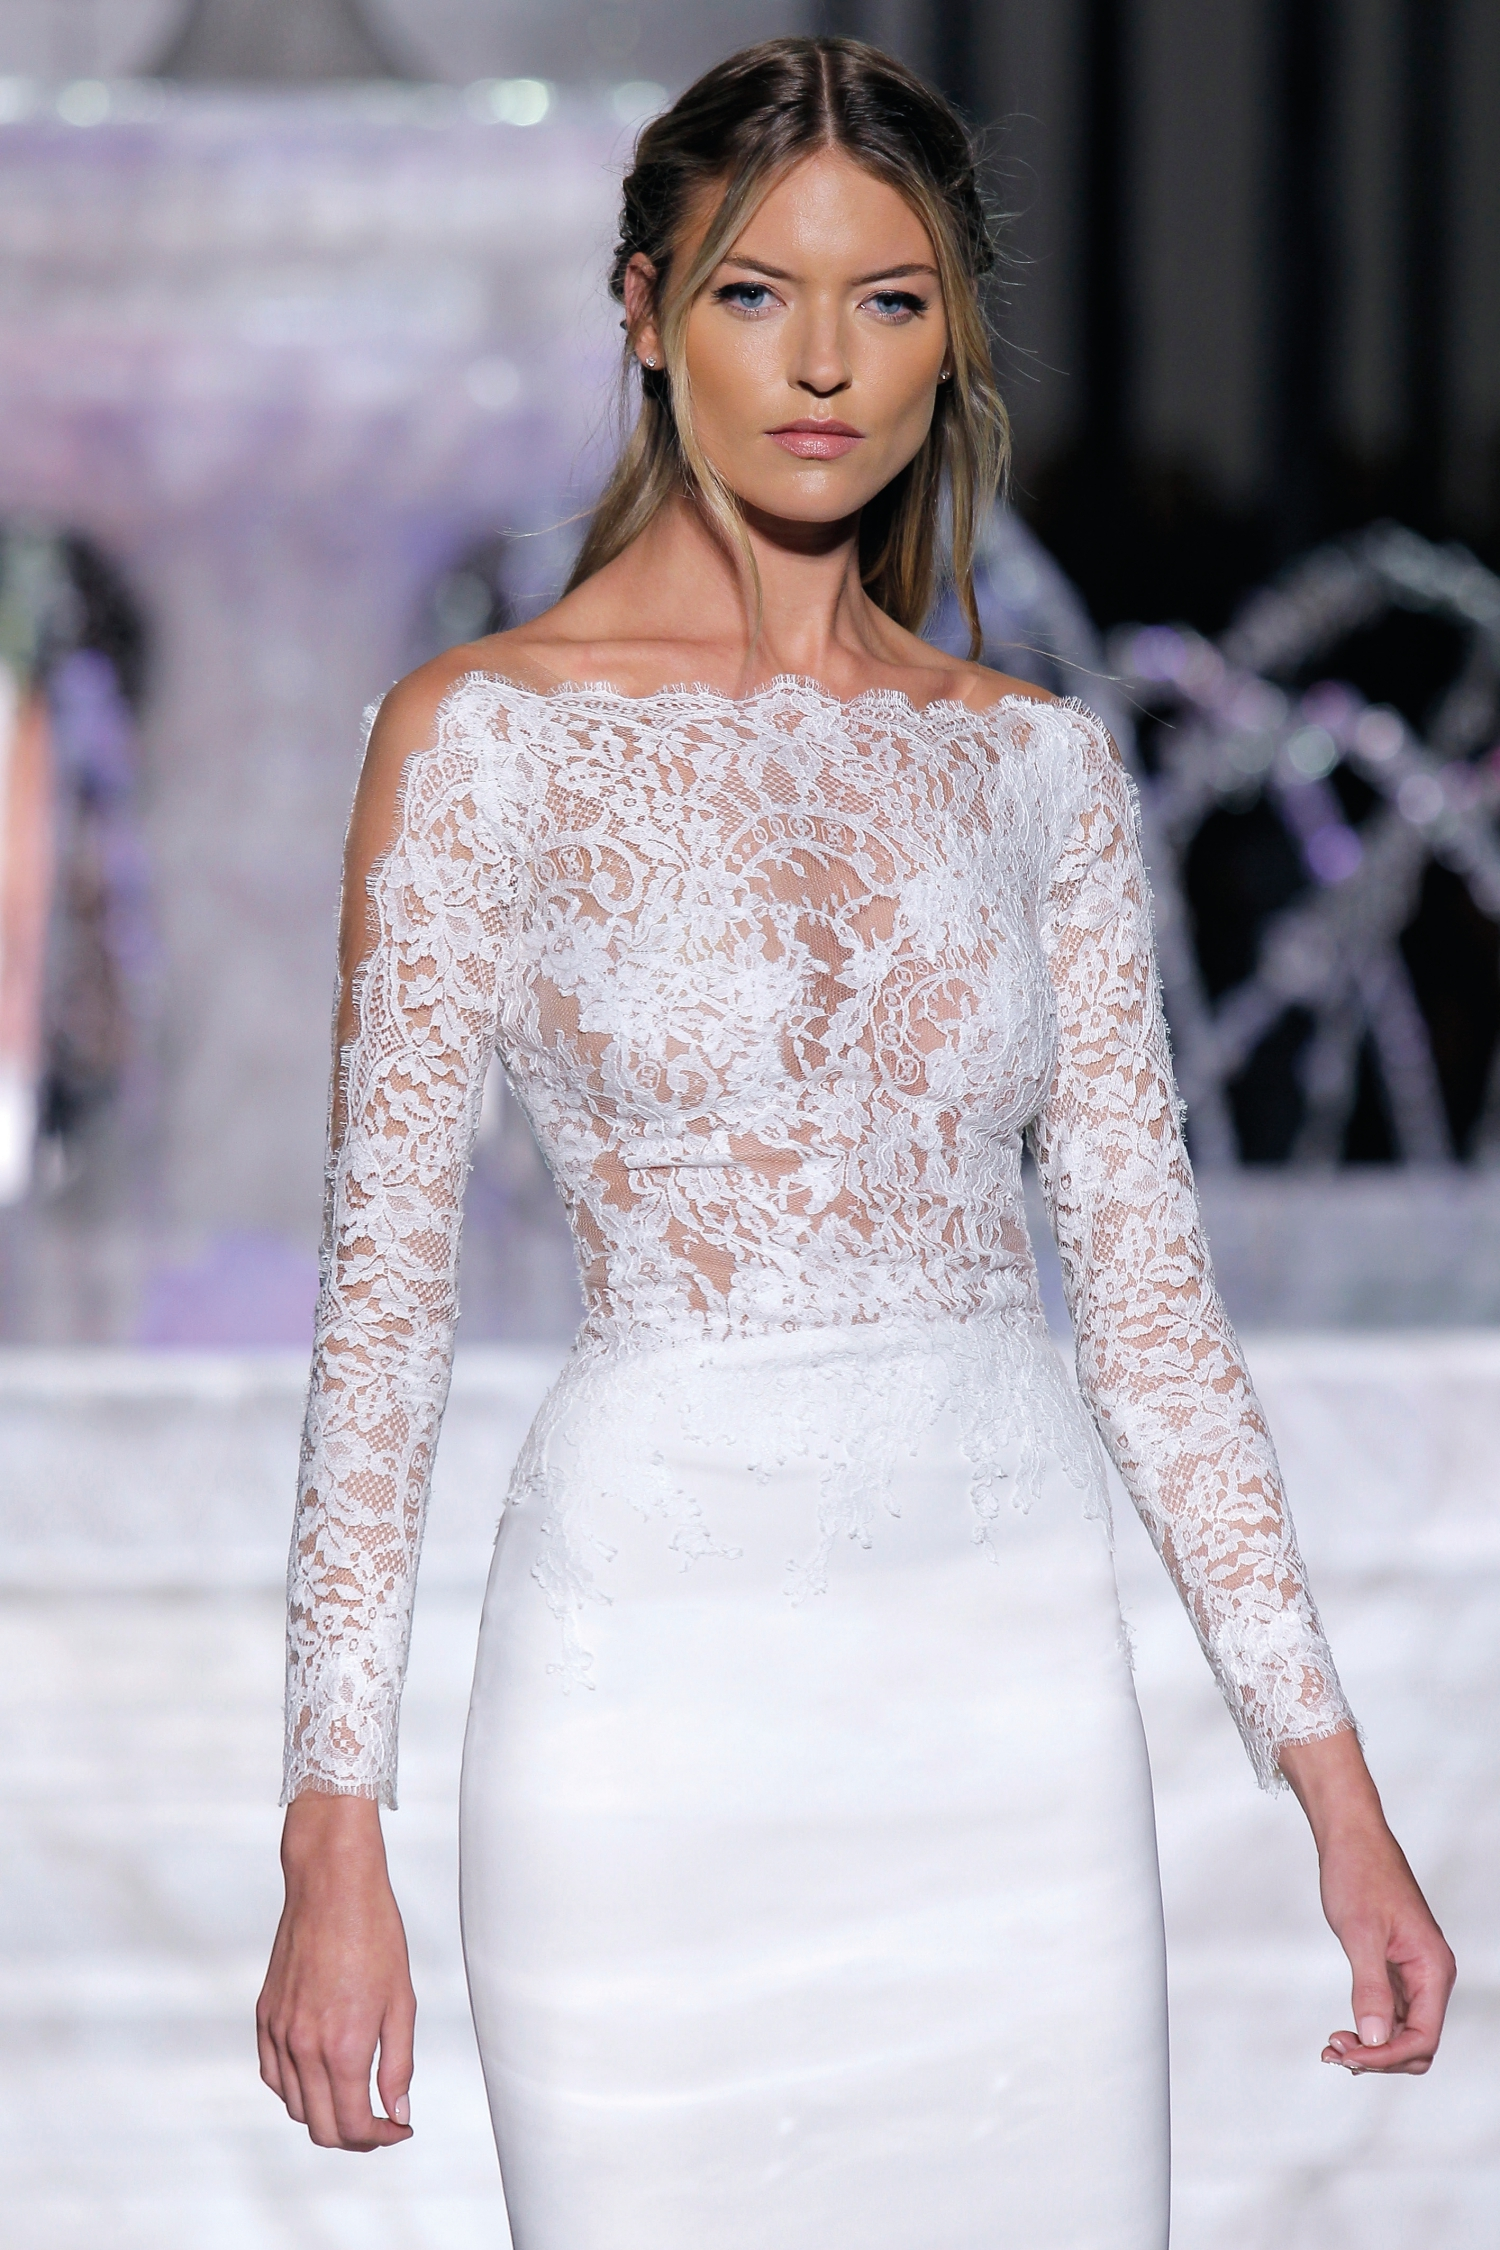 Pronovias Bridal Fashion Show 2018 Fashionhippieloves